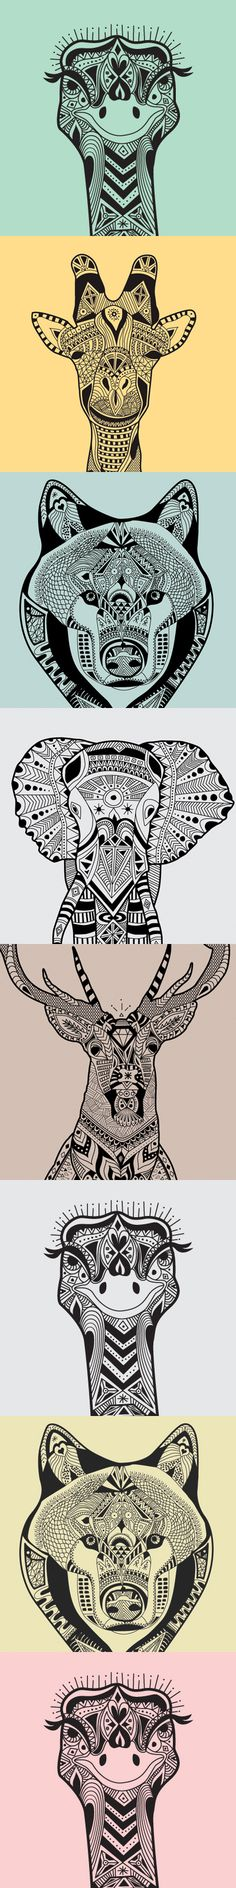 wild animals zentangle patterns - Zentangle - More doodle ideas - Zentangle…                                                                                                                                                                                 More